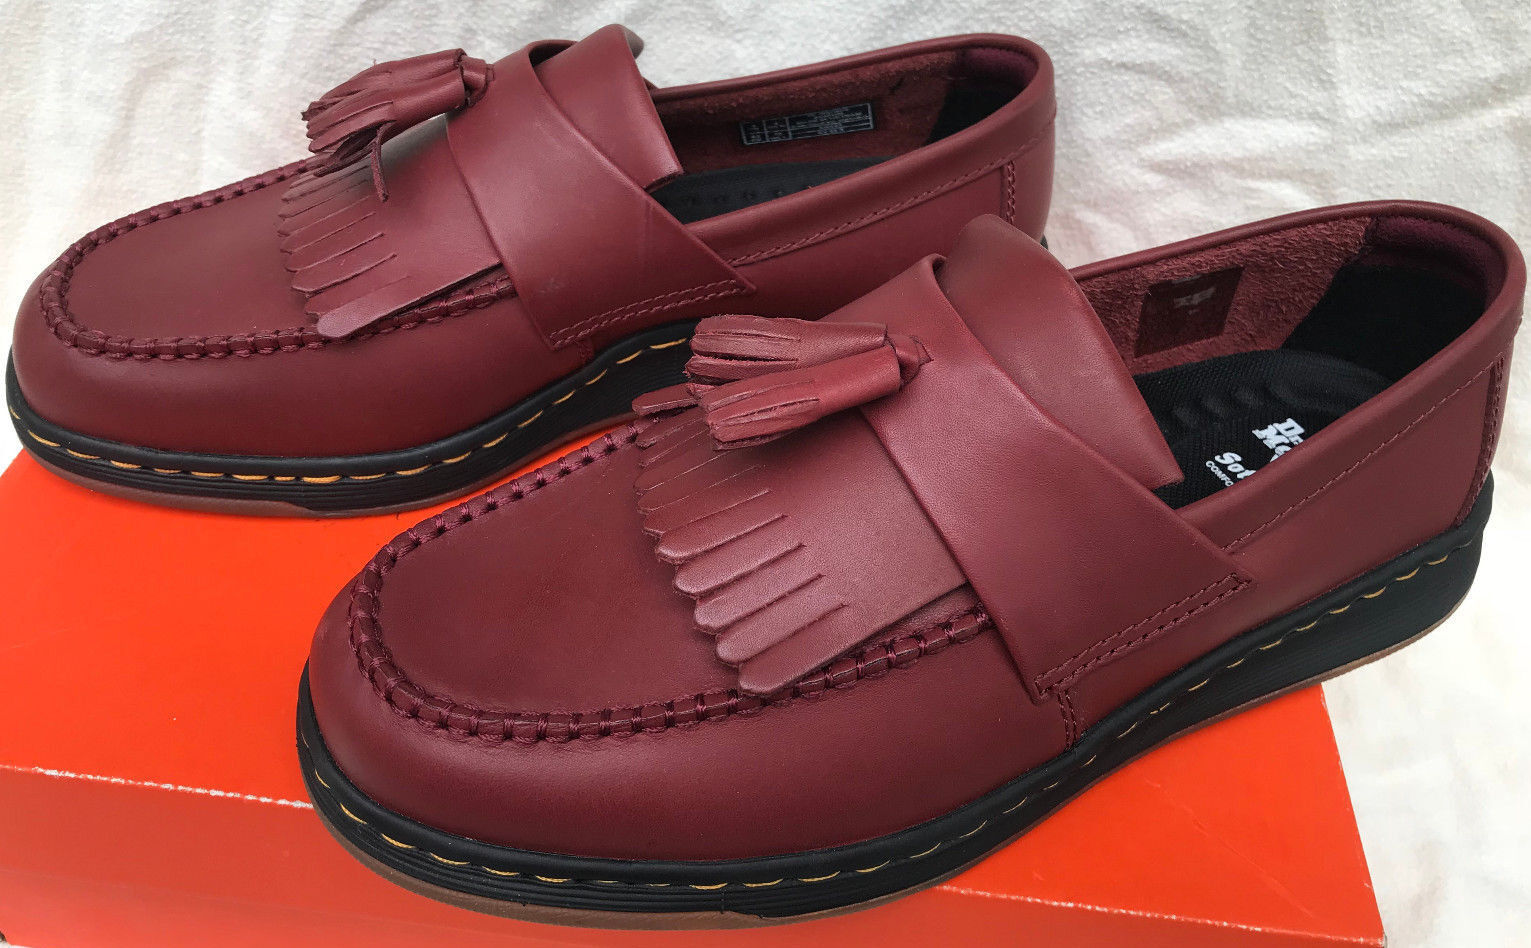 Dr. Martens Edison Soft Wair Cherry Red Leather Slip-On Loafers Shoes Men's 8